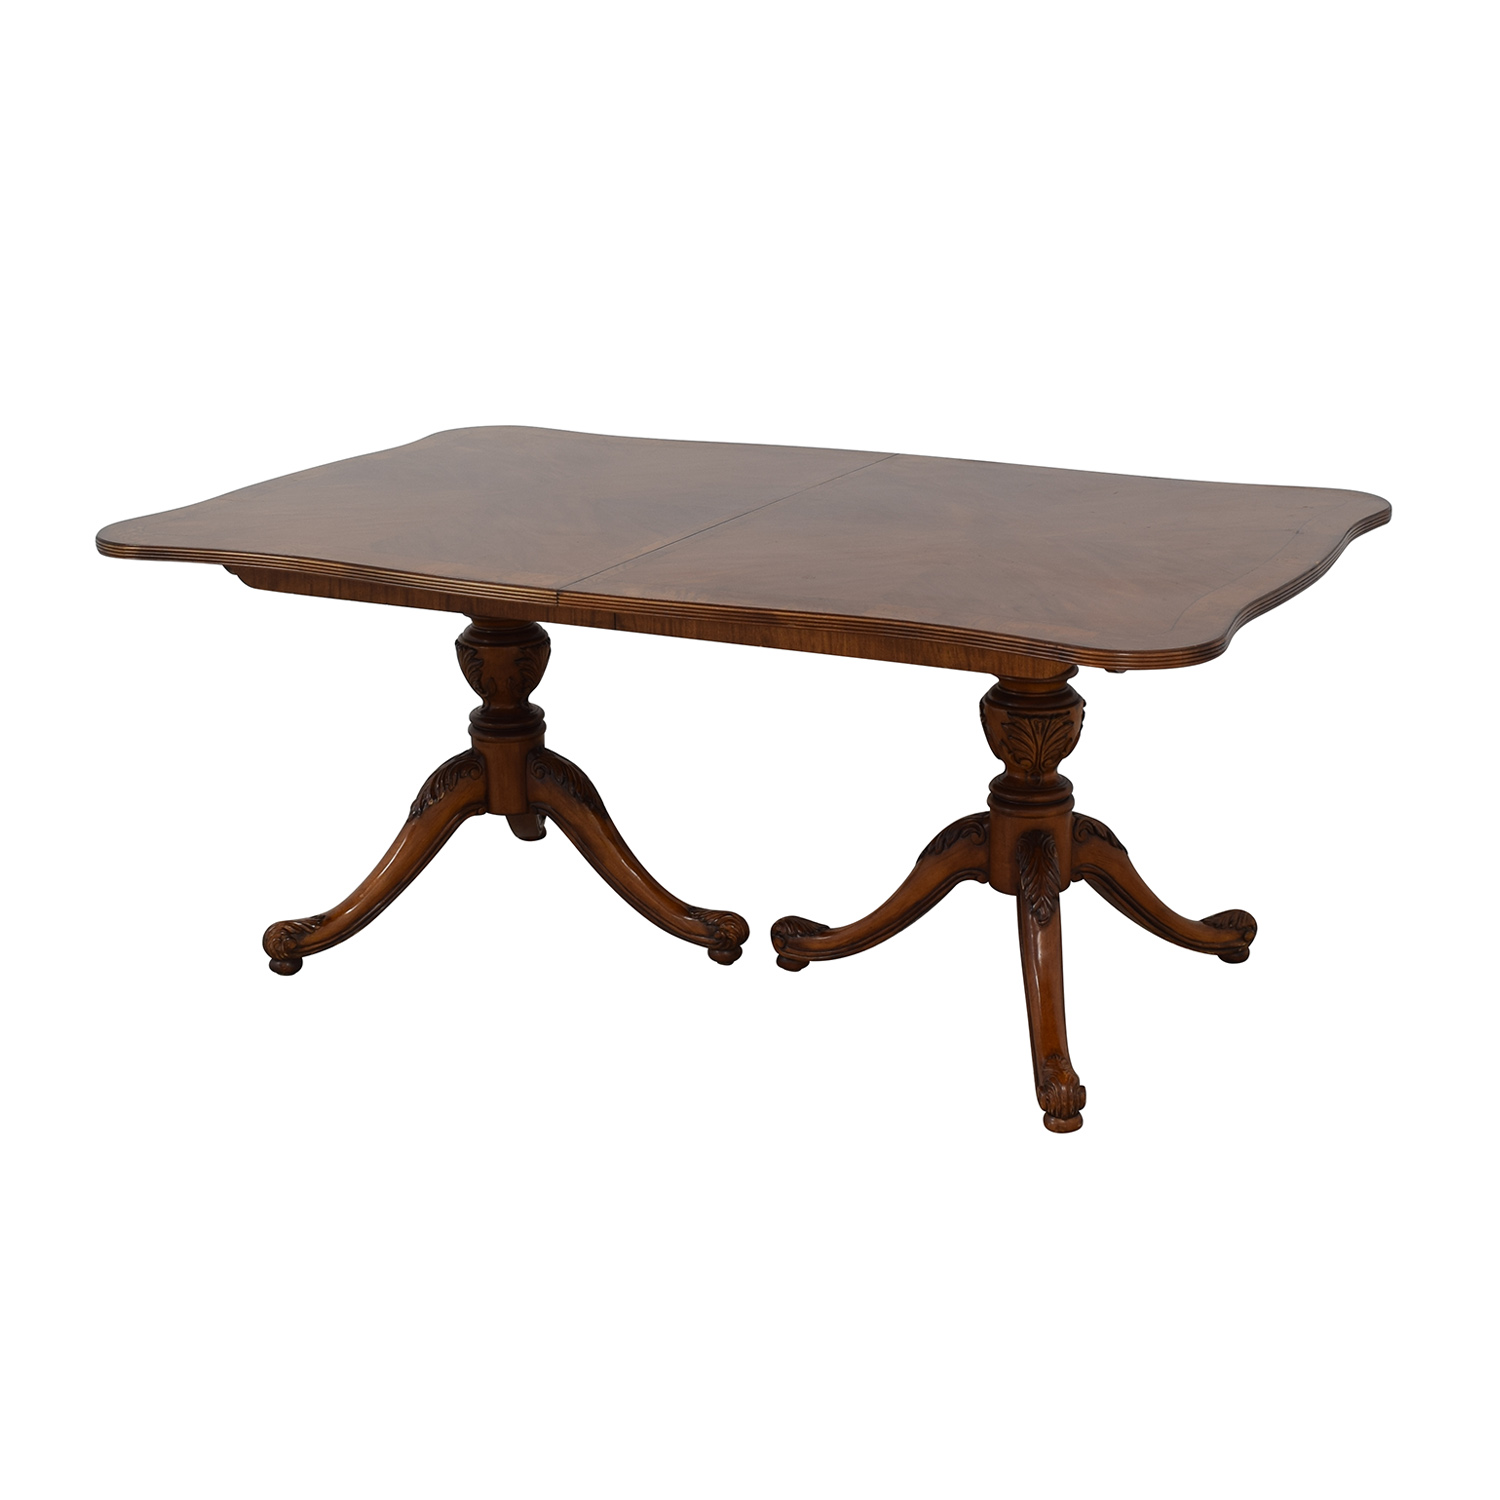 Drexel Heritage Drexel Heritage Dining Table second hand